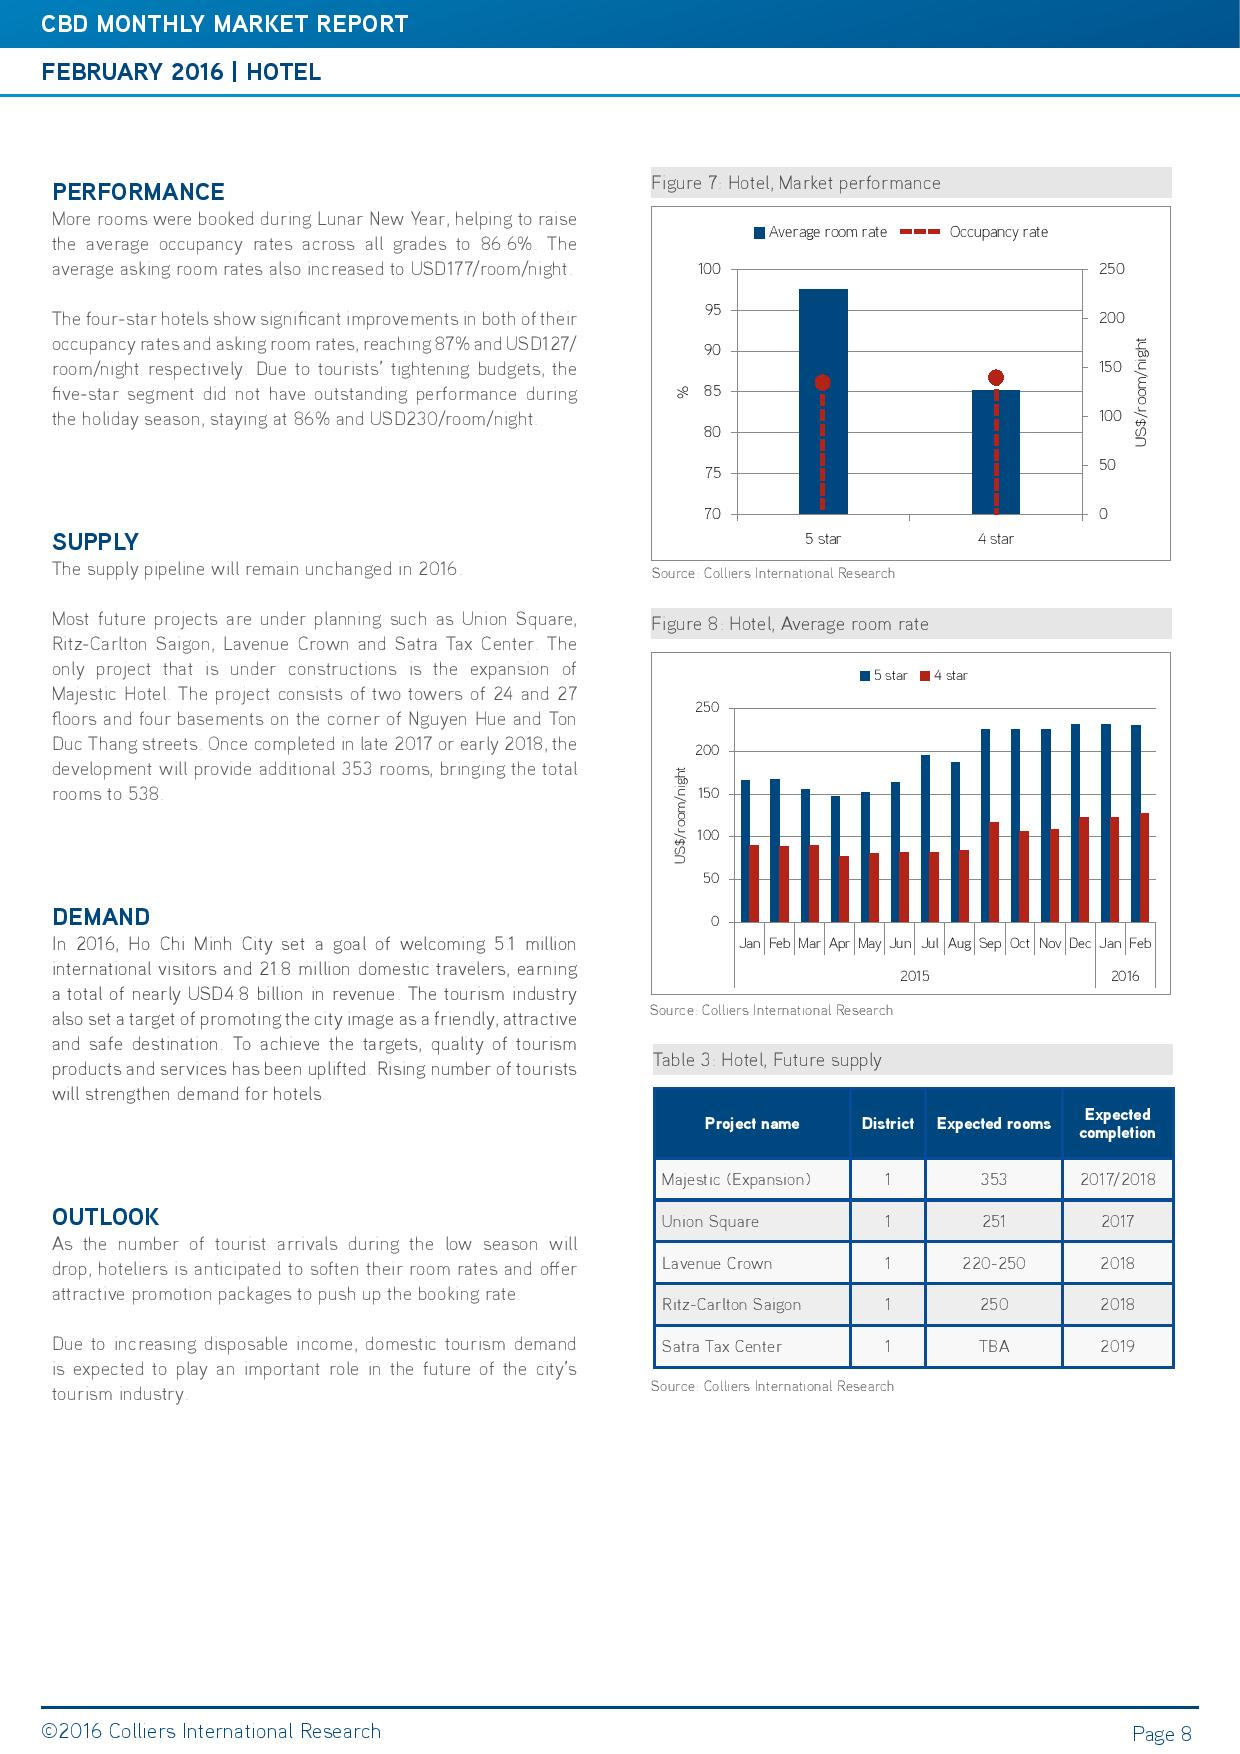 Colliers_HCMC_CBD report_Feb 2016_ENG-page-008